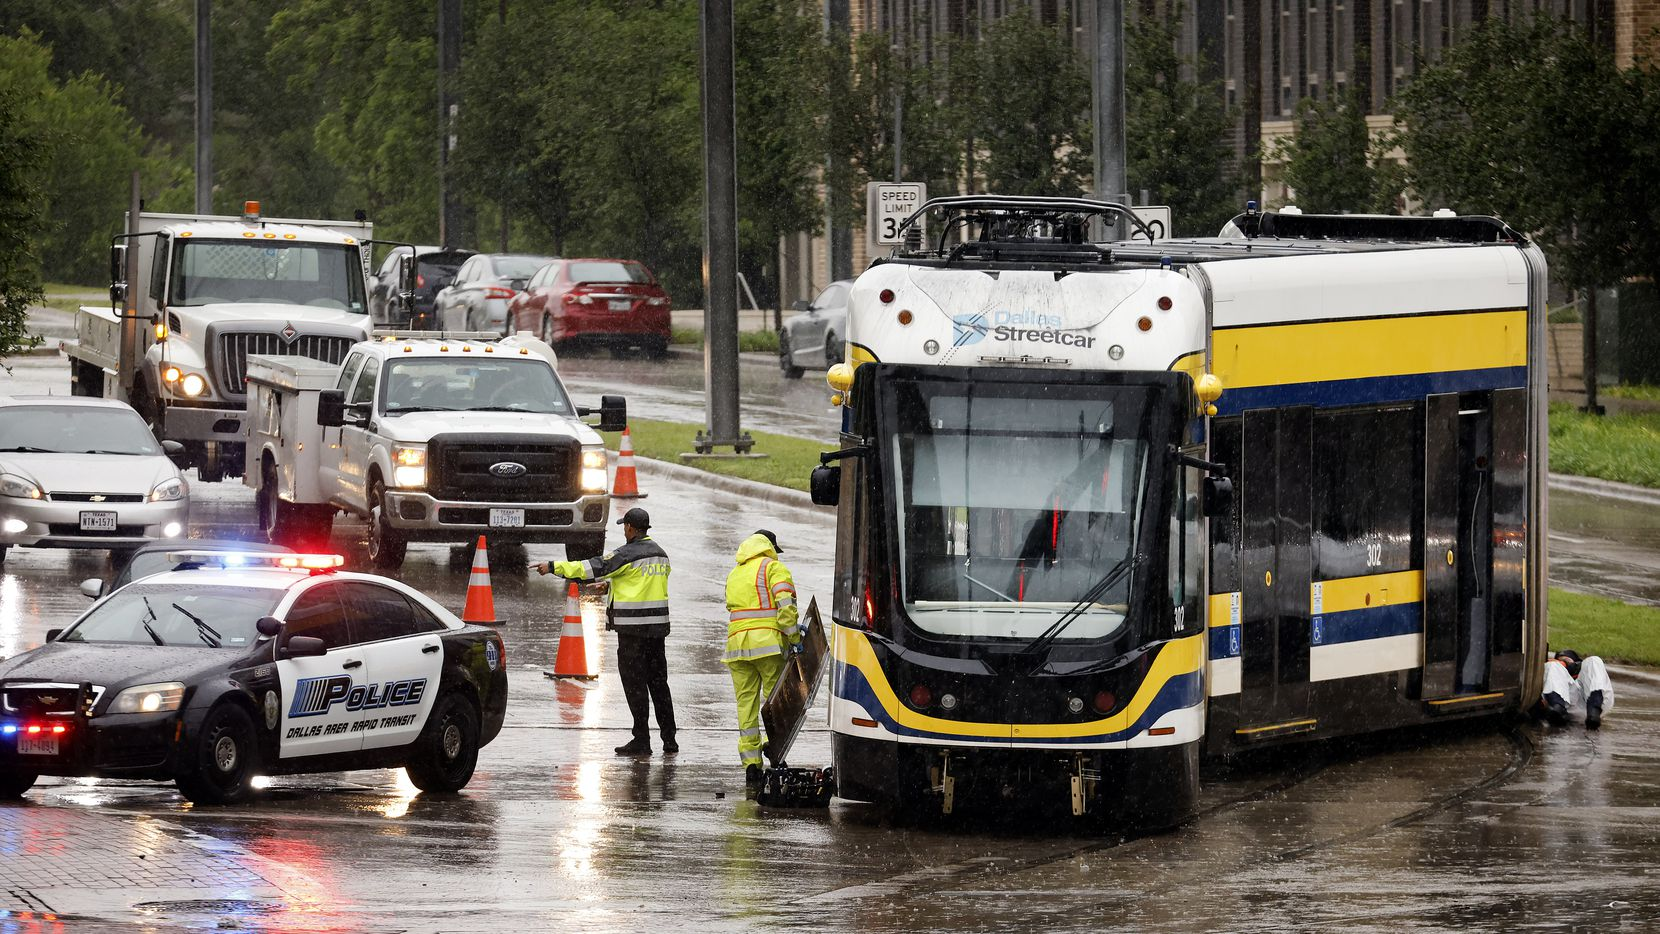 Working in the rain, DART crewman work on getting the Dallas Streetcar back on the tracks after a derailment at Zang Blvd. and Davis Street in the Bishop Arts District of Dallas, Tuesday, May 11, 2021. There were no injuries.  A shuttle bus is in place to provide transportation for customers, a spokesperson said. (Tom Fox/The Dallas Morning News)